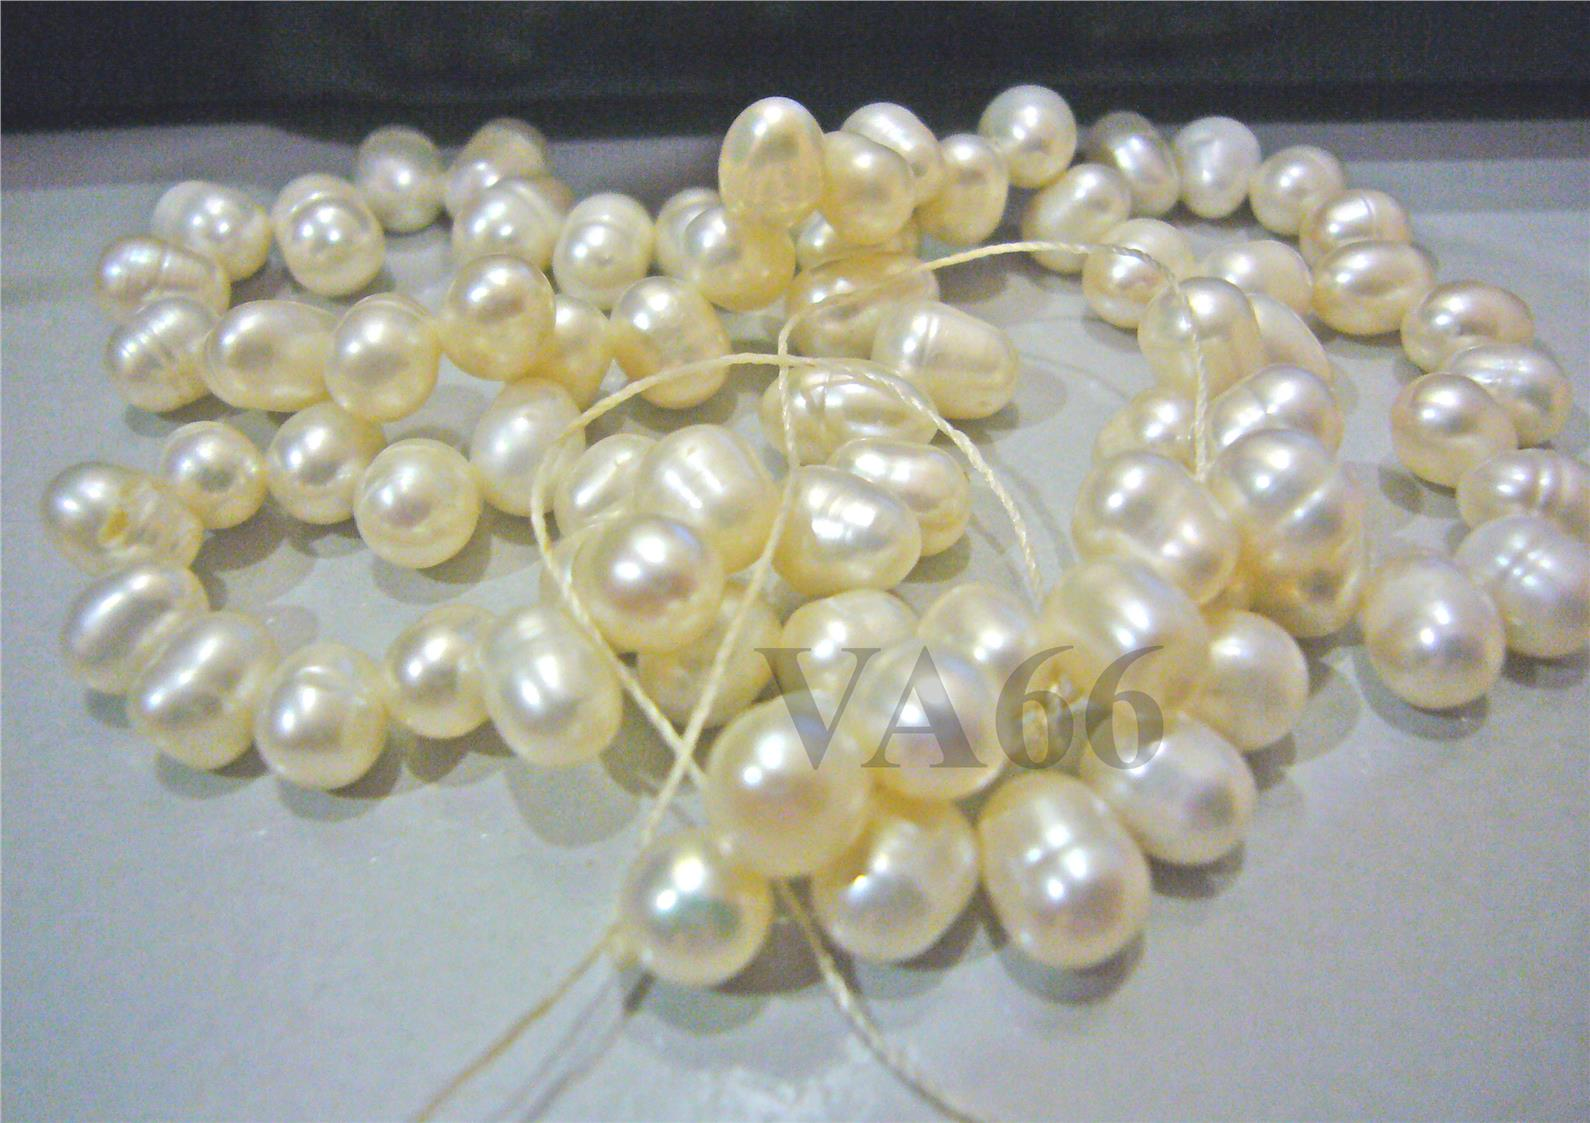 "DIY 15"" M Fresh Water Cultured Pearls 2 Way Beads Oval Puffy White Bea"